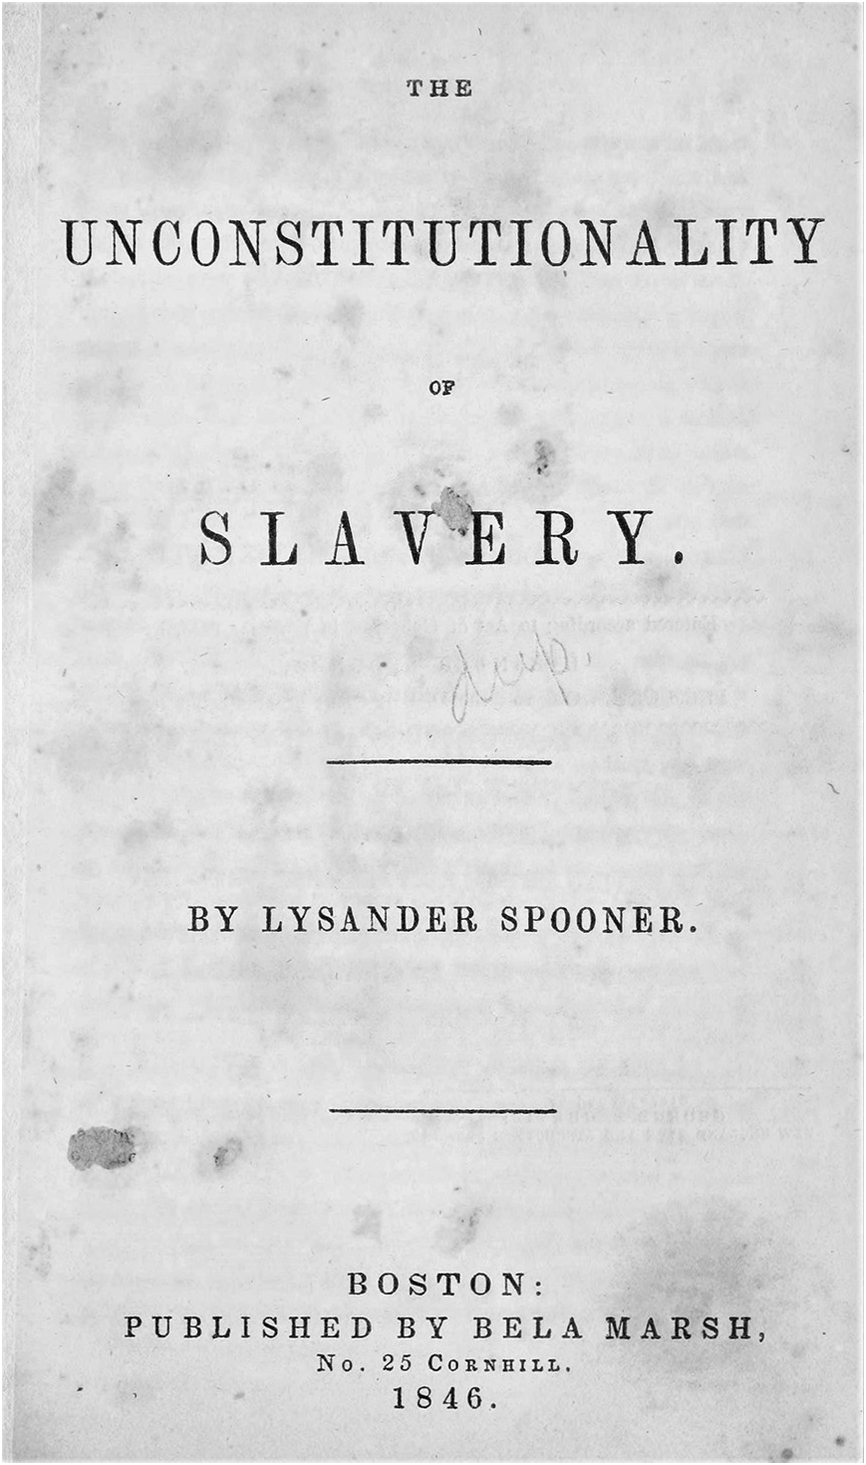 The Original Intent of the Slaveholding Founders (Chapter 1